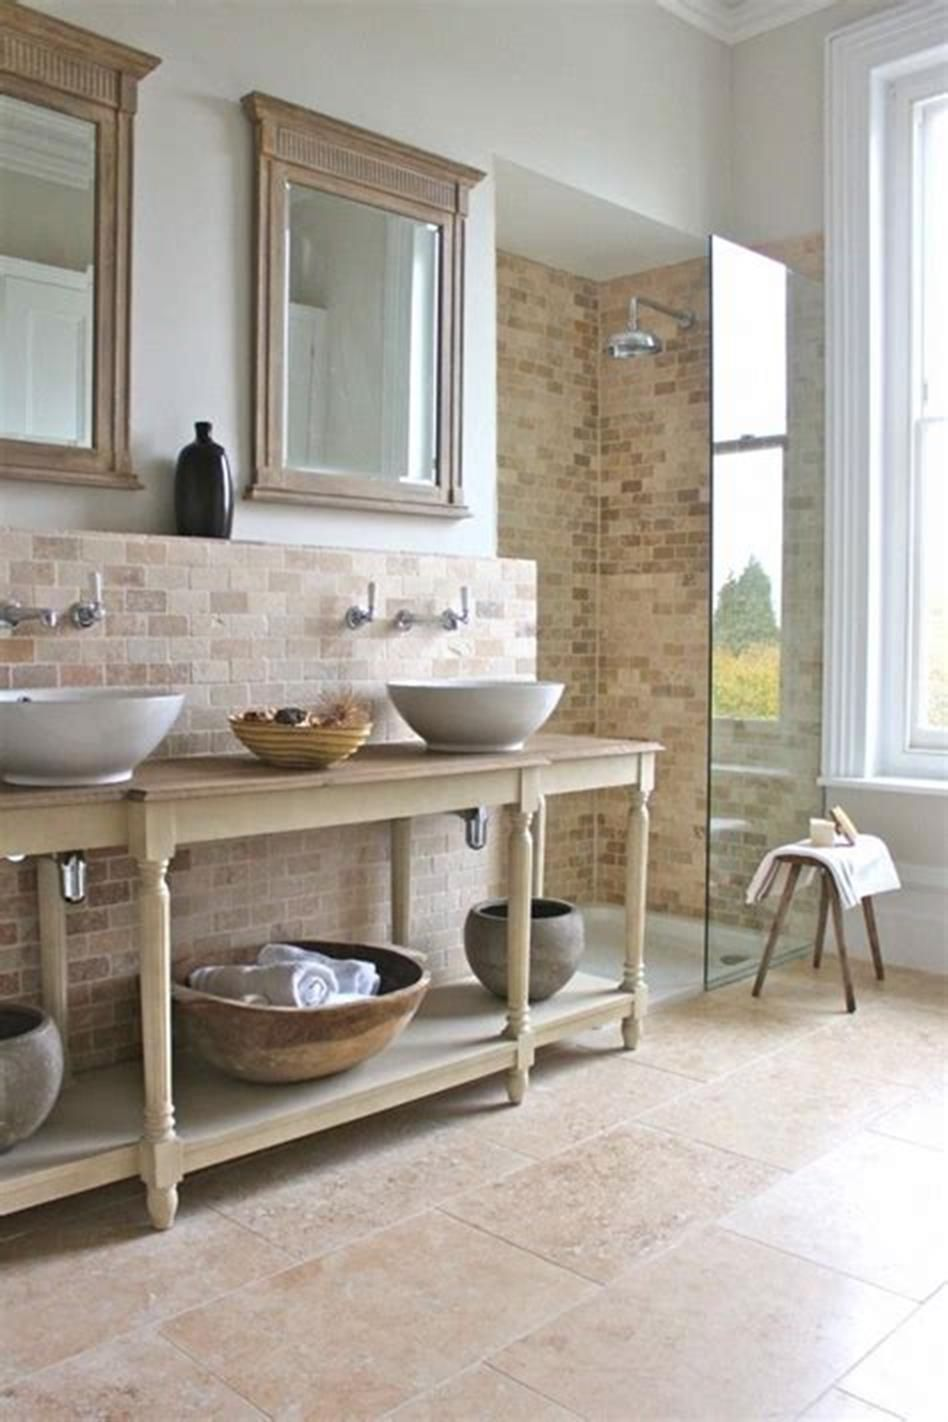 50 Best Modern Country Bathroom Design And Decor Ideas For 2019 Homenthusiastic Country Bathroom Designs Modern Country Bathrooms Country Bathroom